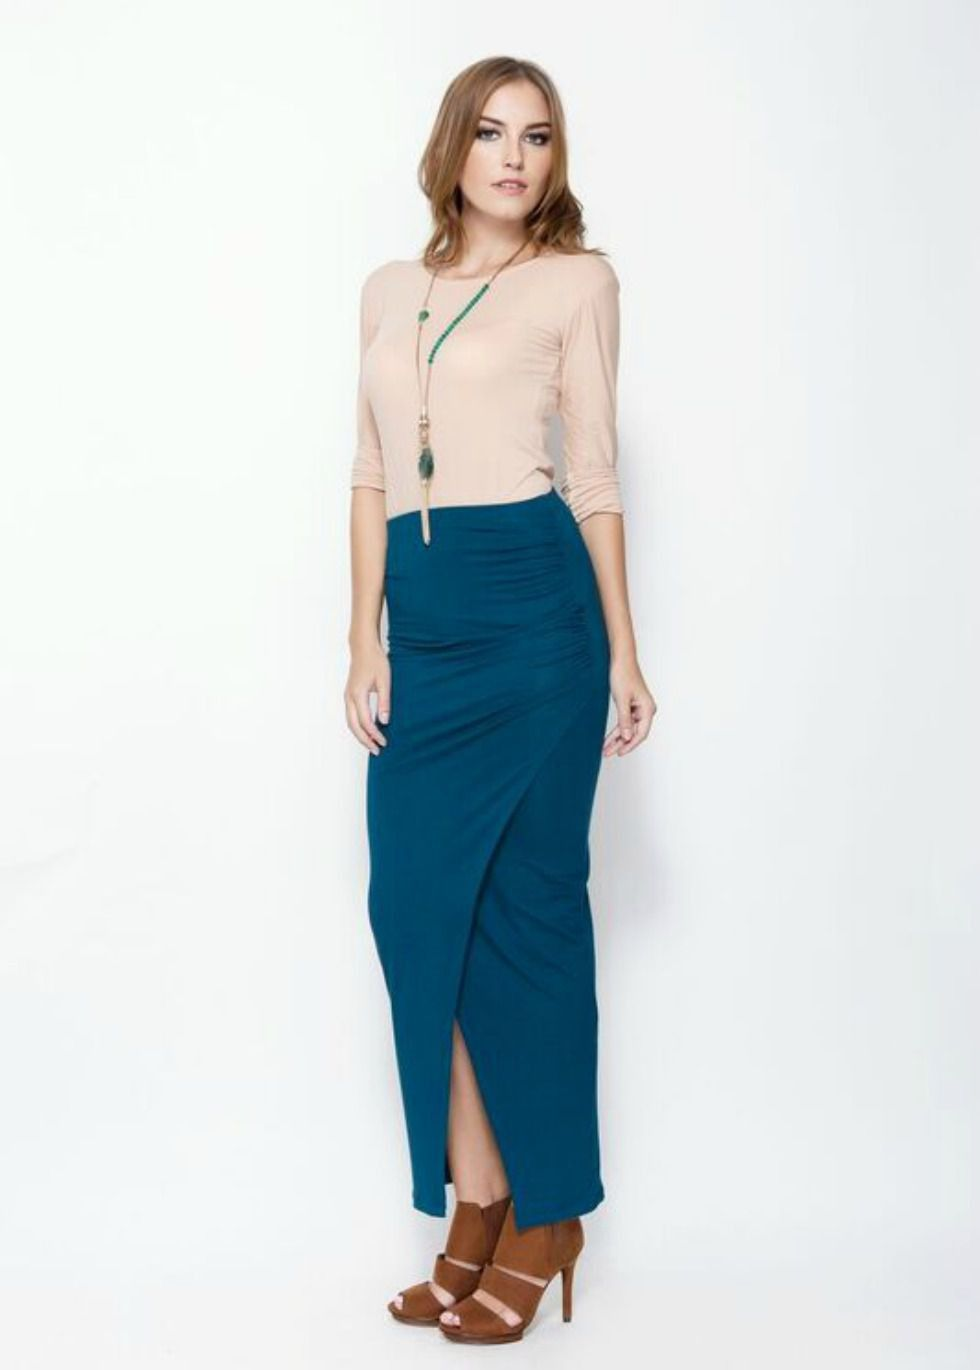 - Emerald very stretch fabric - Split hem, opening at the front - Slim fit - cut close to the body - Unique Size: can fit from size XS to XL - Exist in Emerald or Black color - No linned - Machine wash